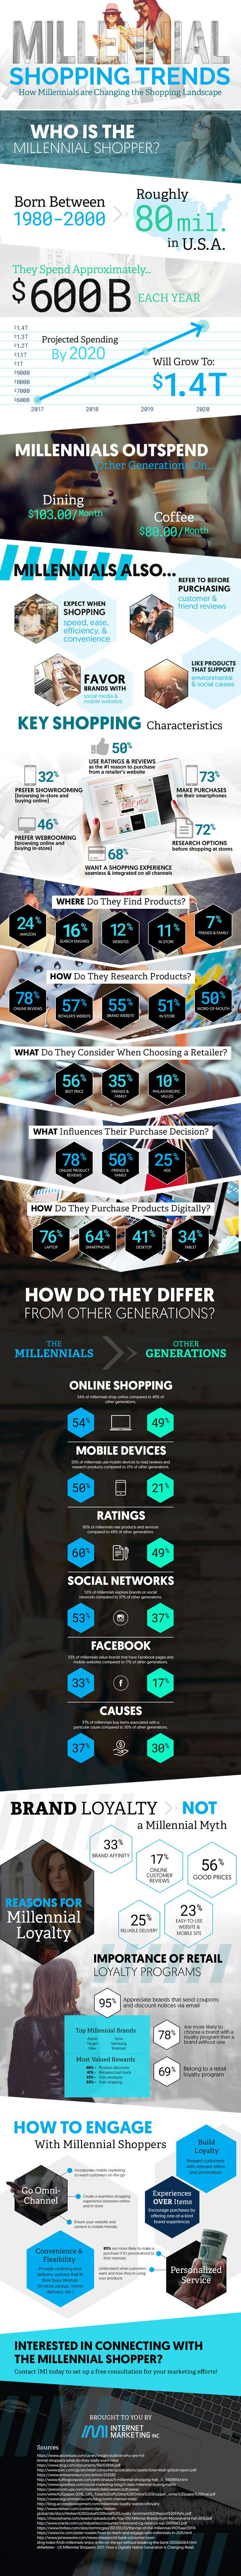 How Millennials Shop: Characteristics and Influences | Infographic